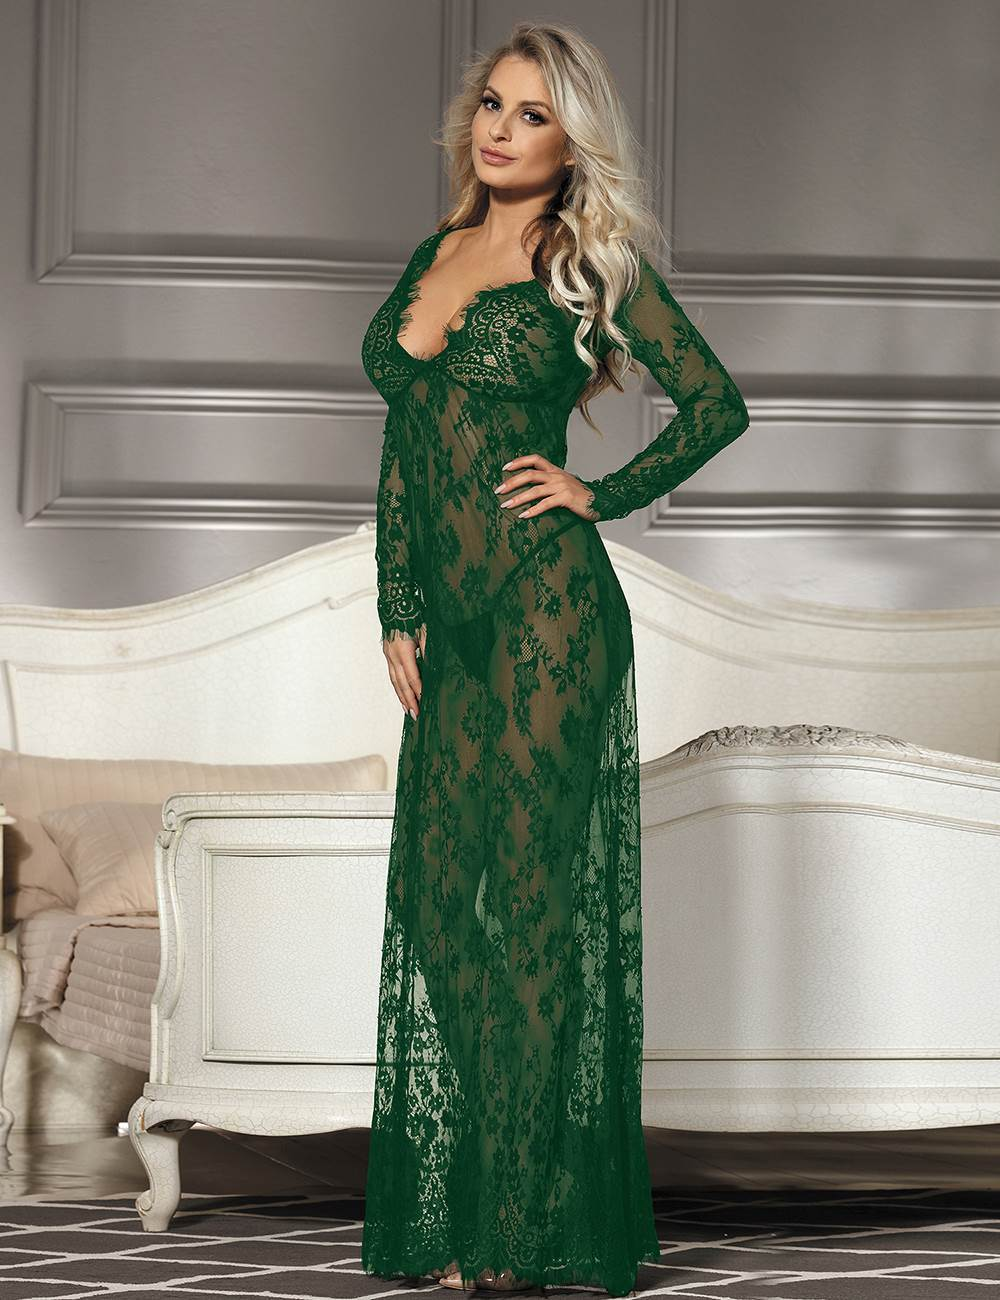 Dark Green Long Sleeve Sheer Floral Lace Sleepwear Lingerie Dress